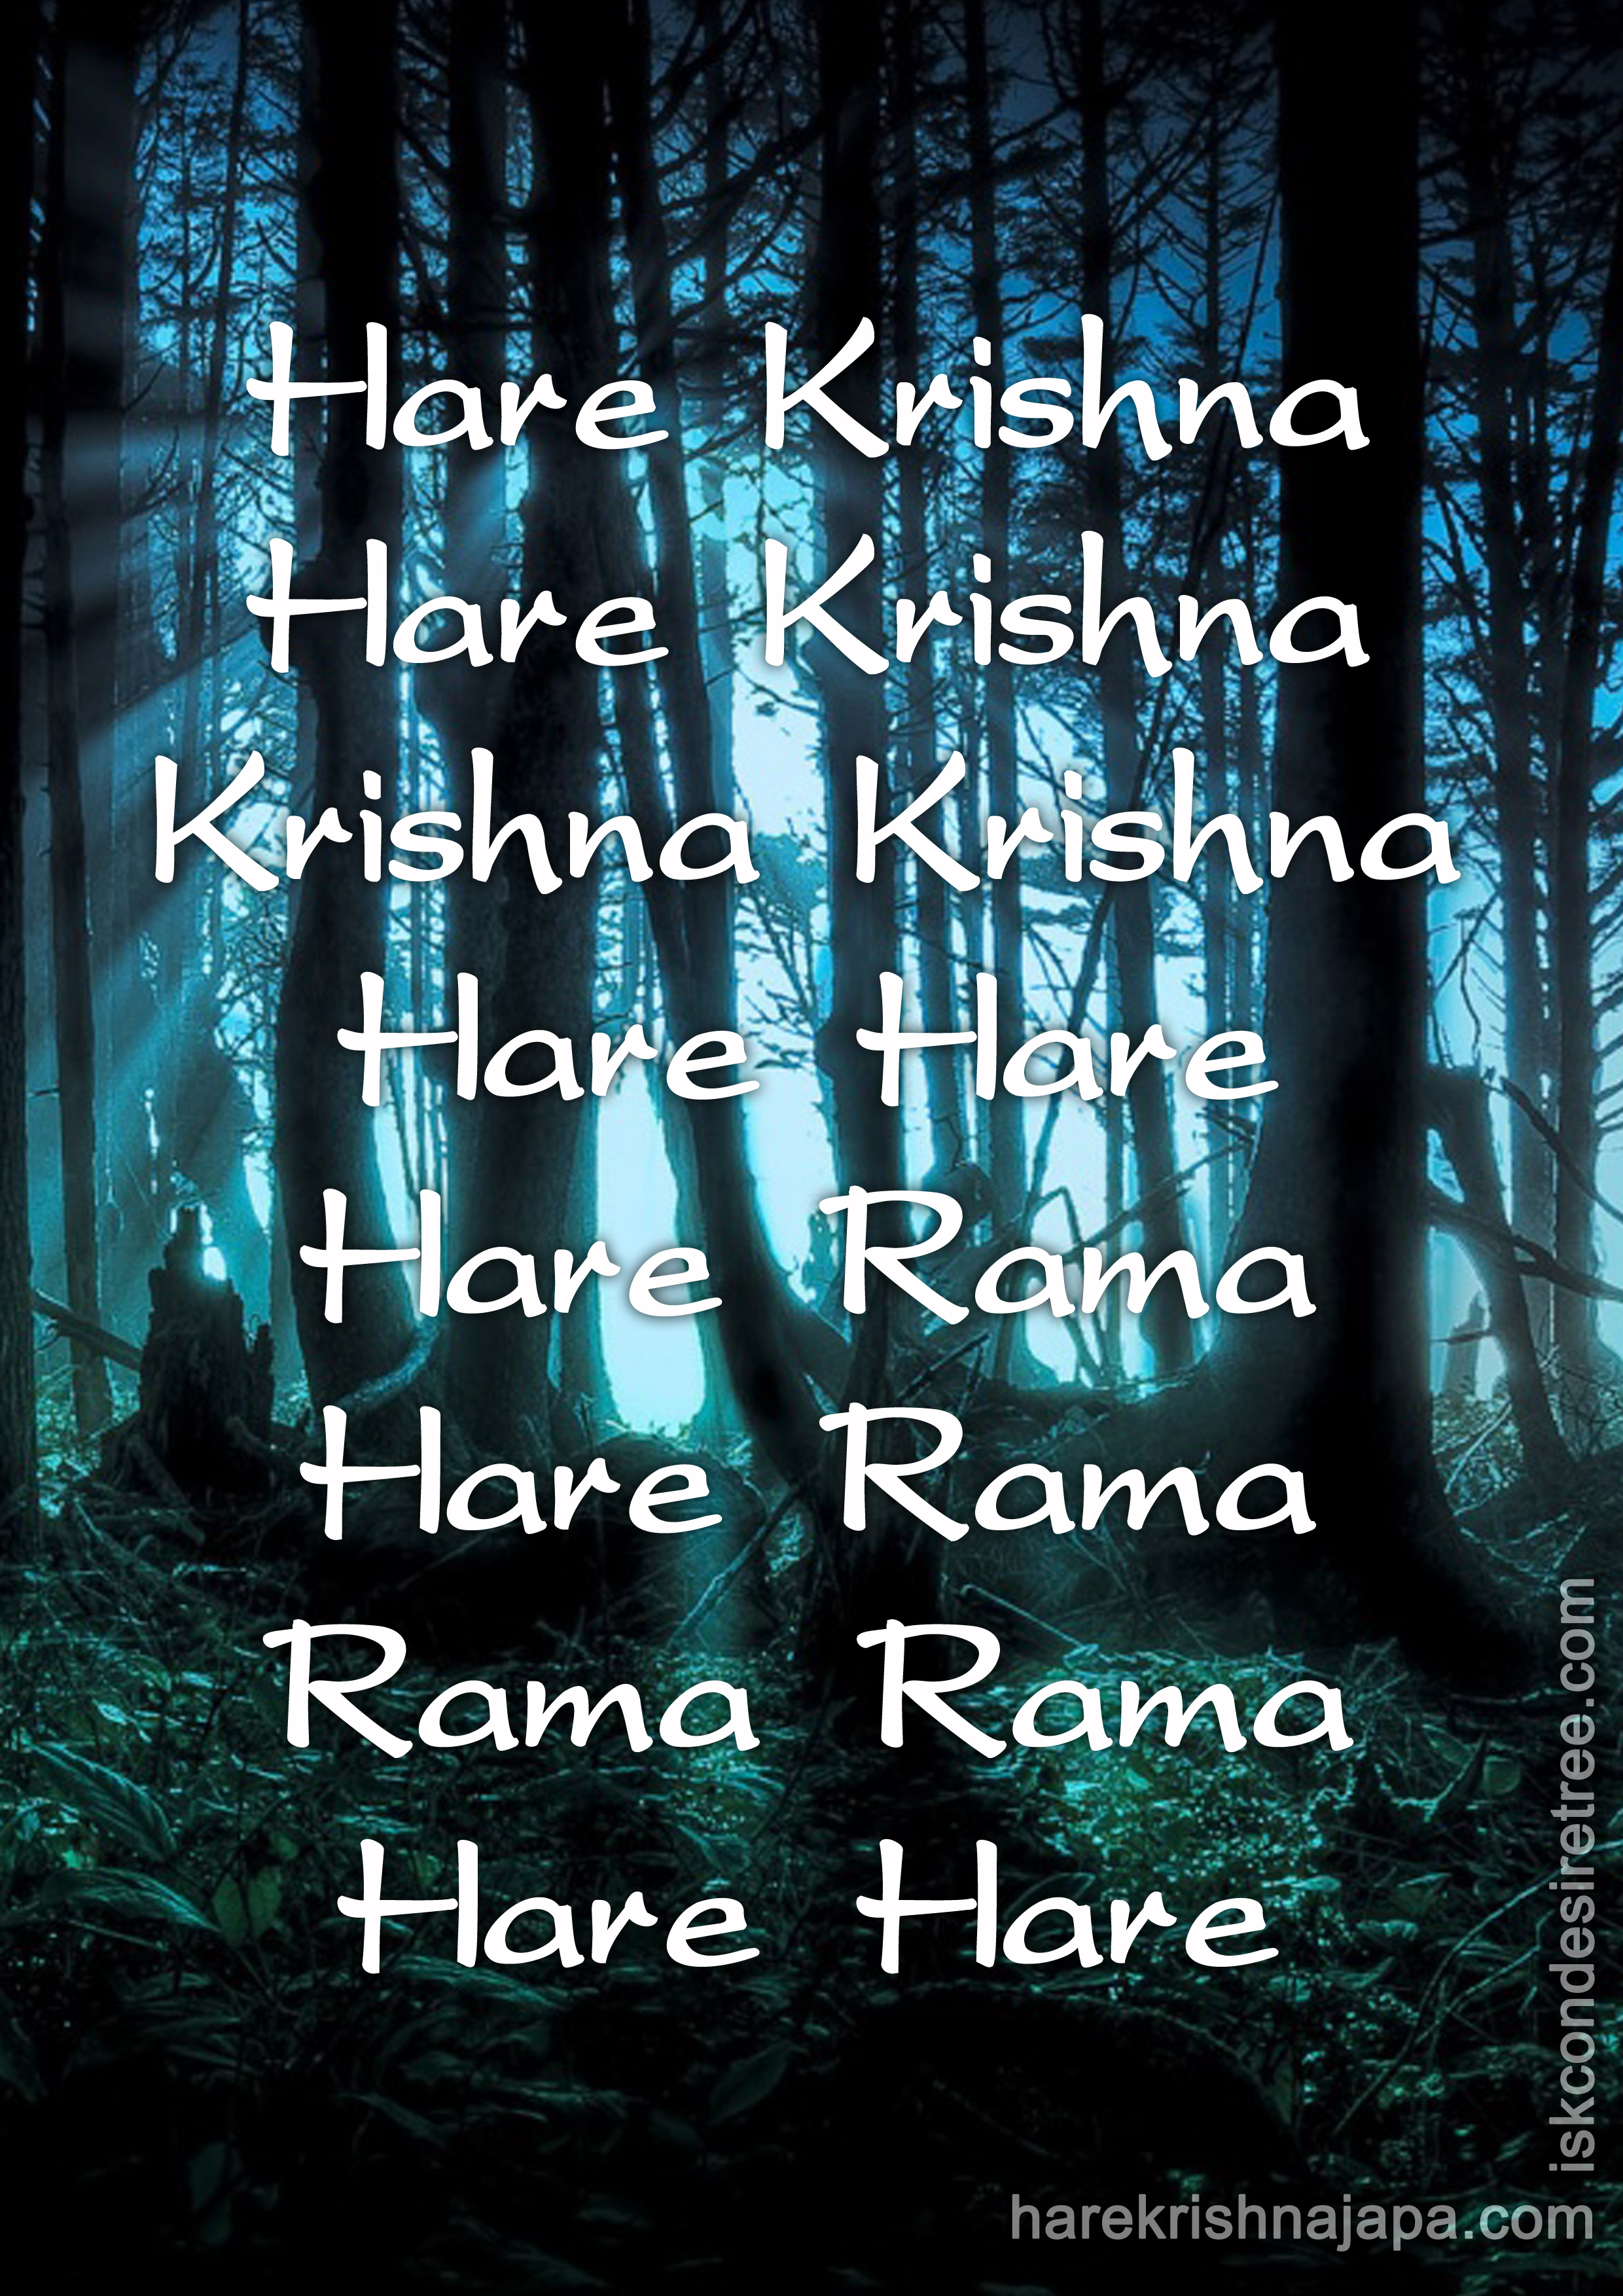 Chant Hare Krishna maha-mantra and make your life sublime